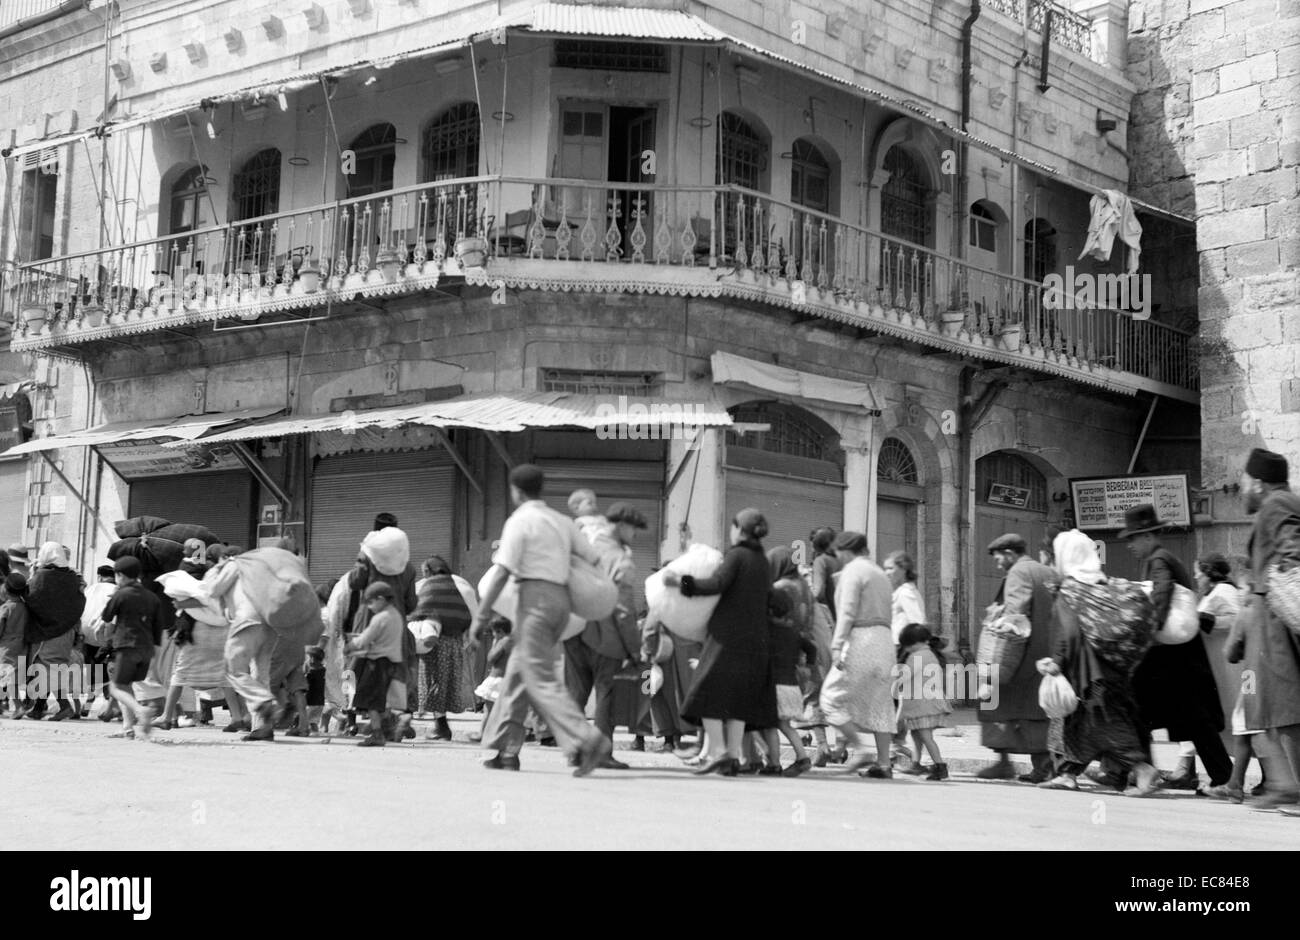 Jewish exodus from the Old City, taken near the Jaffa Gate during the Palestine disturbances 1936 - Stock Image